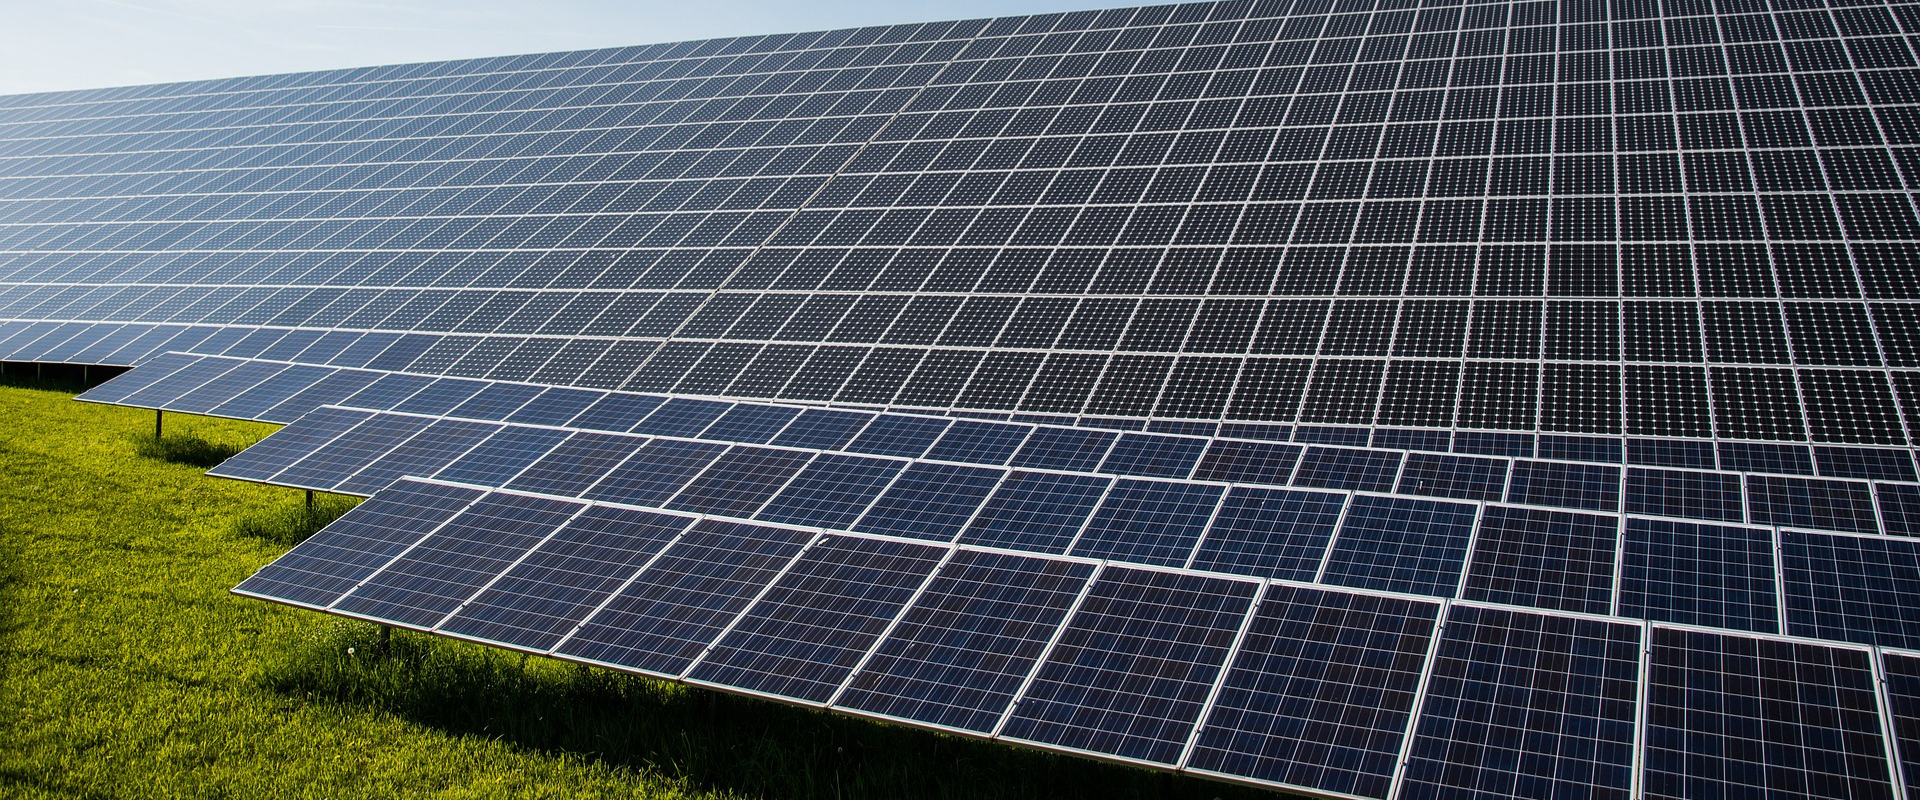 How Can India Become a Global Leader in Solar Power Generation